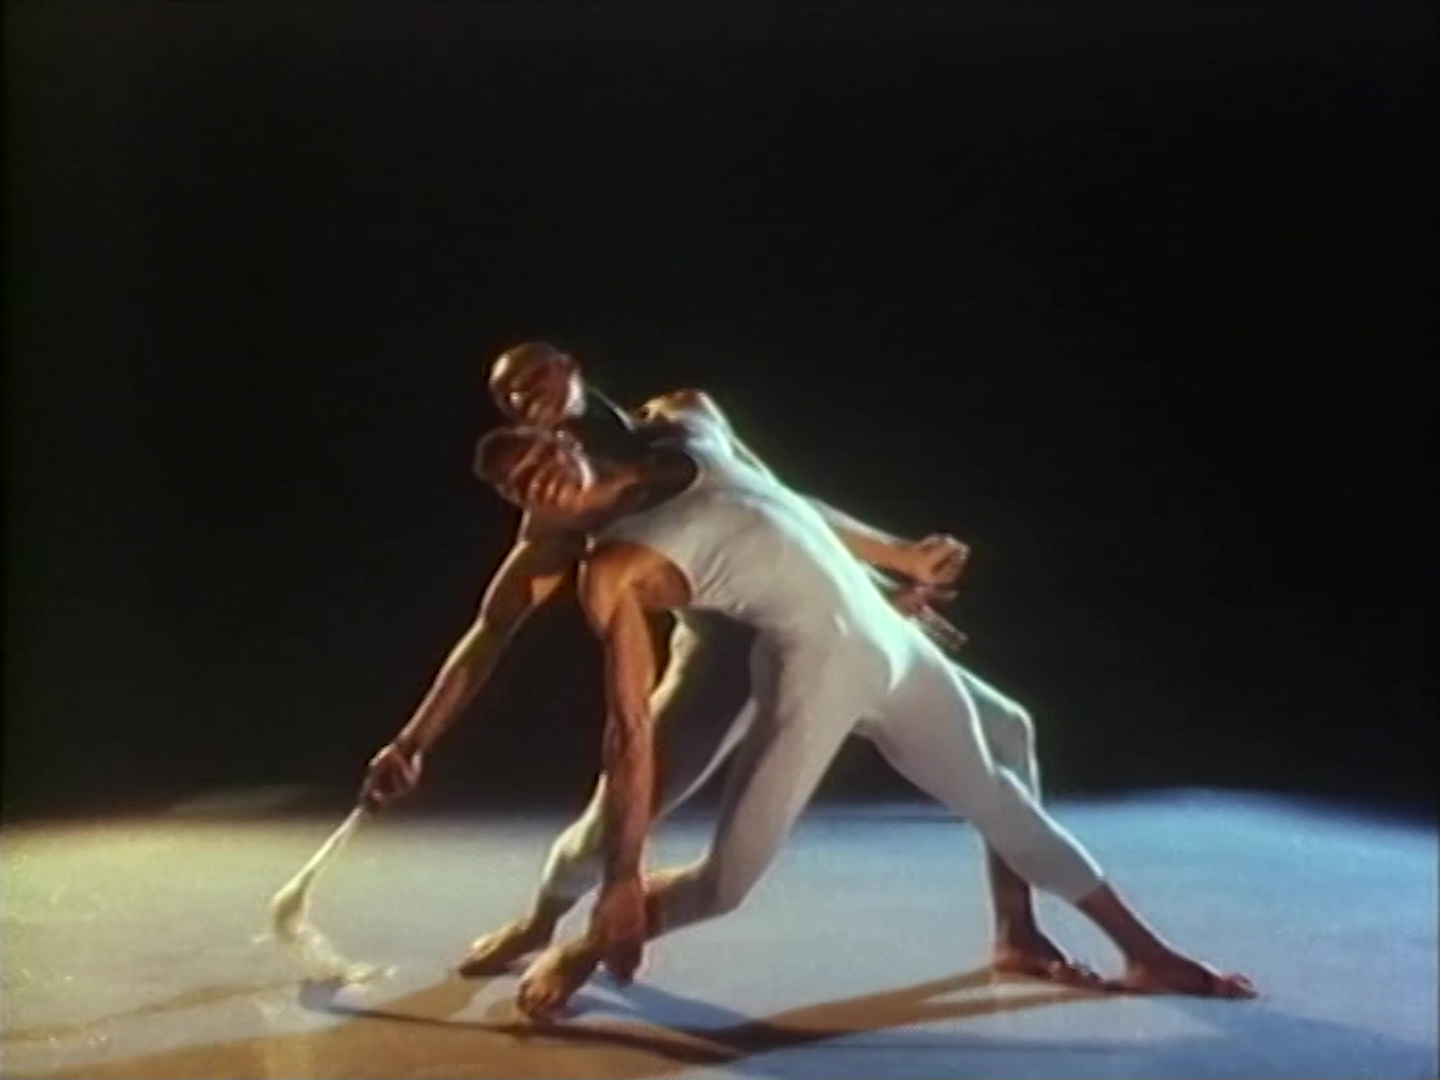 A still from the film rage and desire, the image is of medium quality, slightly blurred and hazy. Two black men in grey leotards pose athletically. They are contemporary dancers mid routine. They are in a dark room, their bodies and the surrounding floor illuminated by spotlight. Their legs are stretched into a lunge and they both lean backwards in unison. The body of the dancer in the foreground partially obstructs his partner, as if they are one being with four legs, two heads and four arms. Both right arms are stretched towards the floor and their left hands are clasped together.